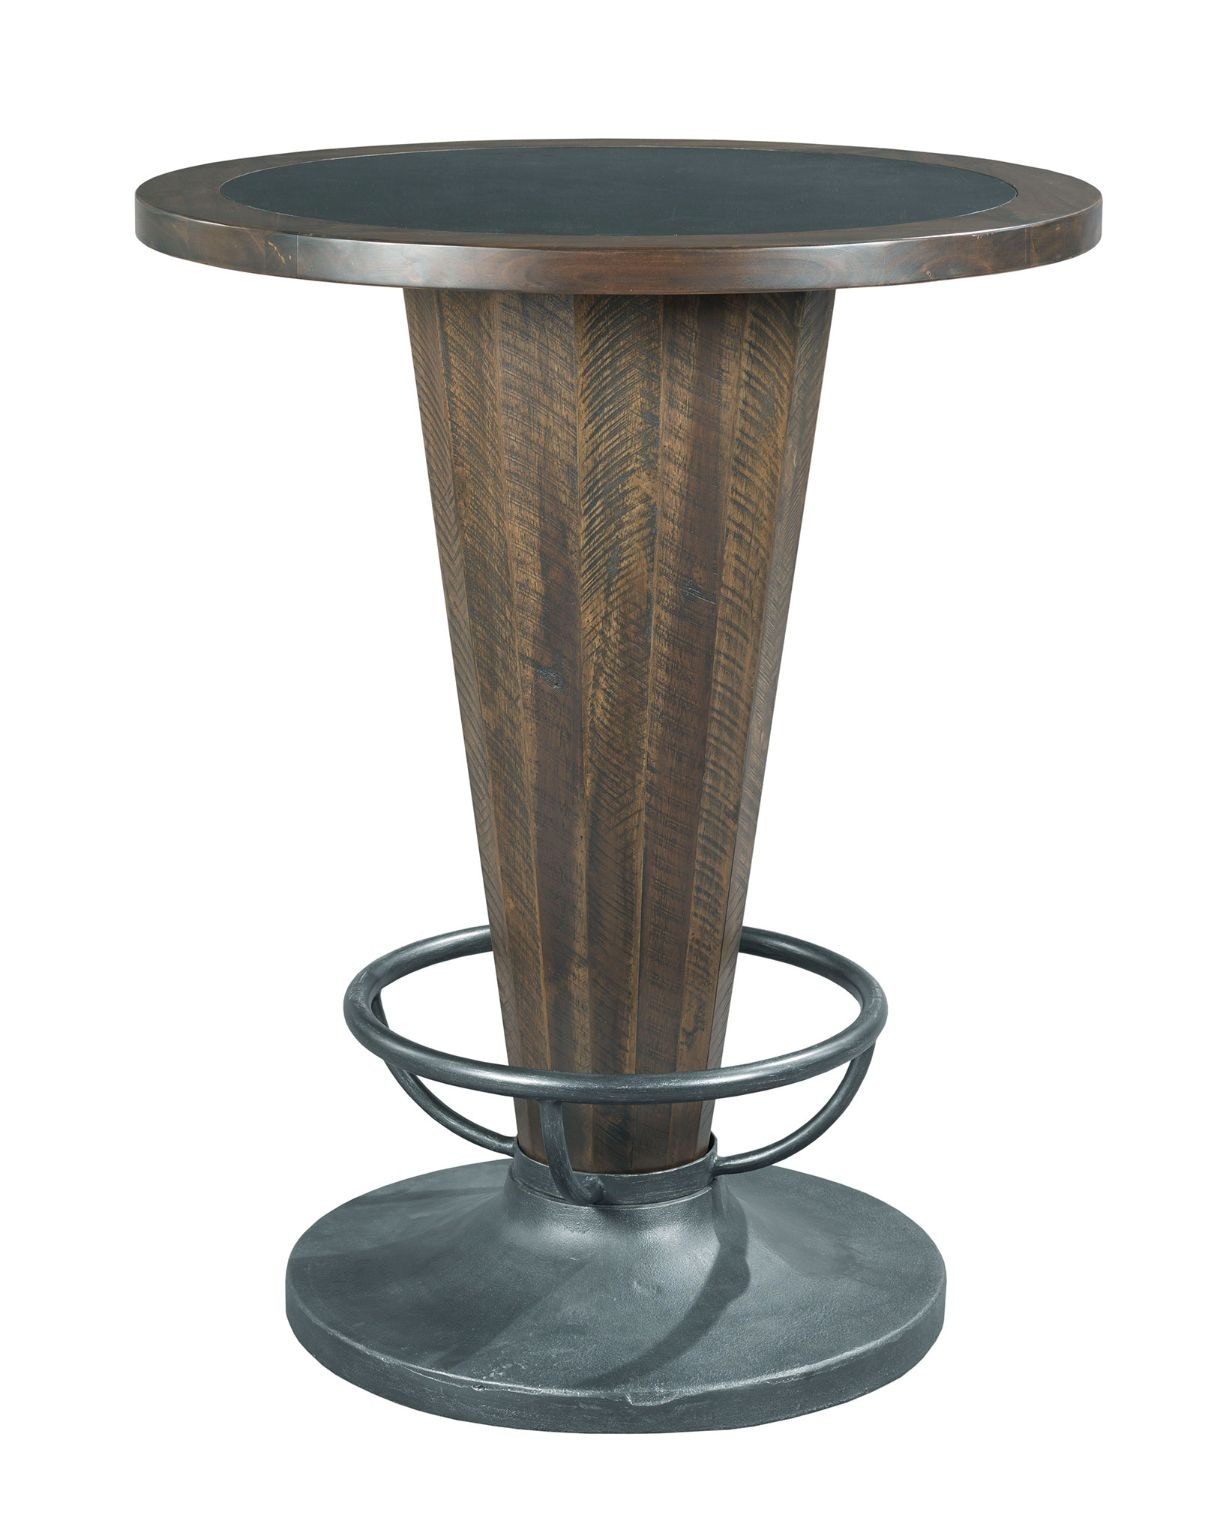 Attractive Hammary Cone Shaped Pub Table 090 877R